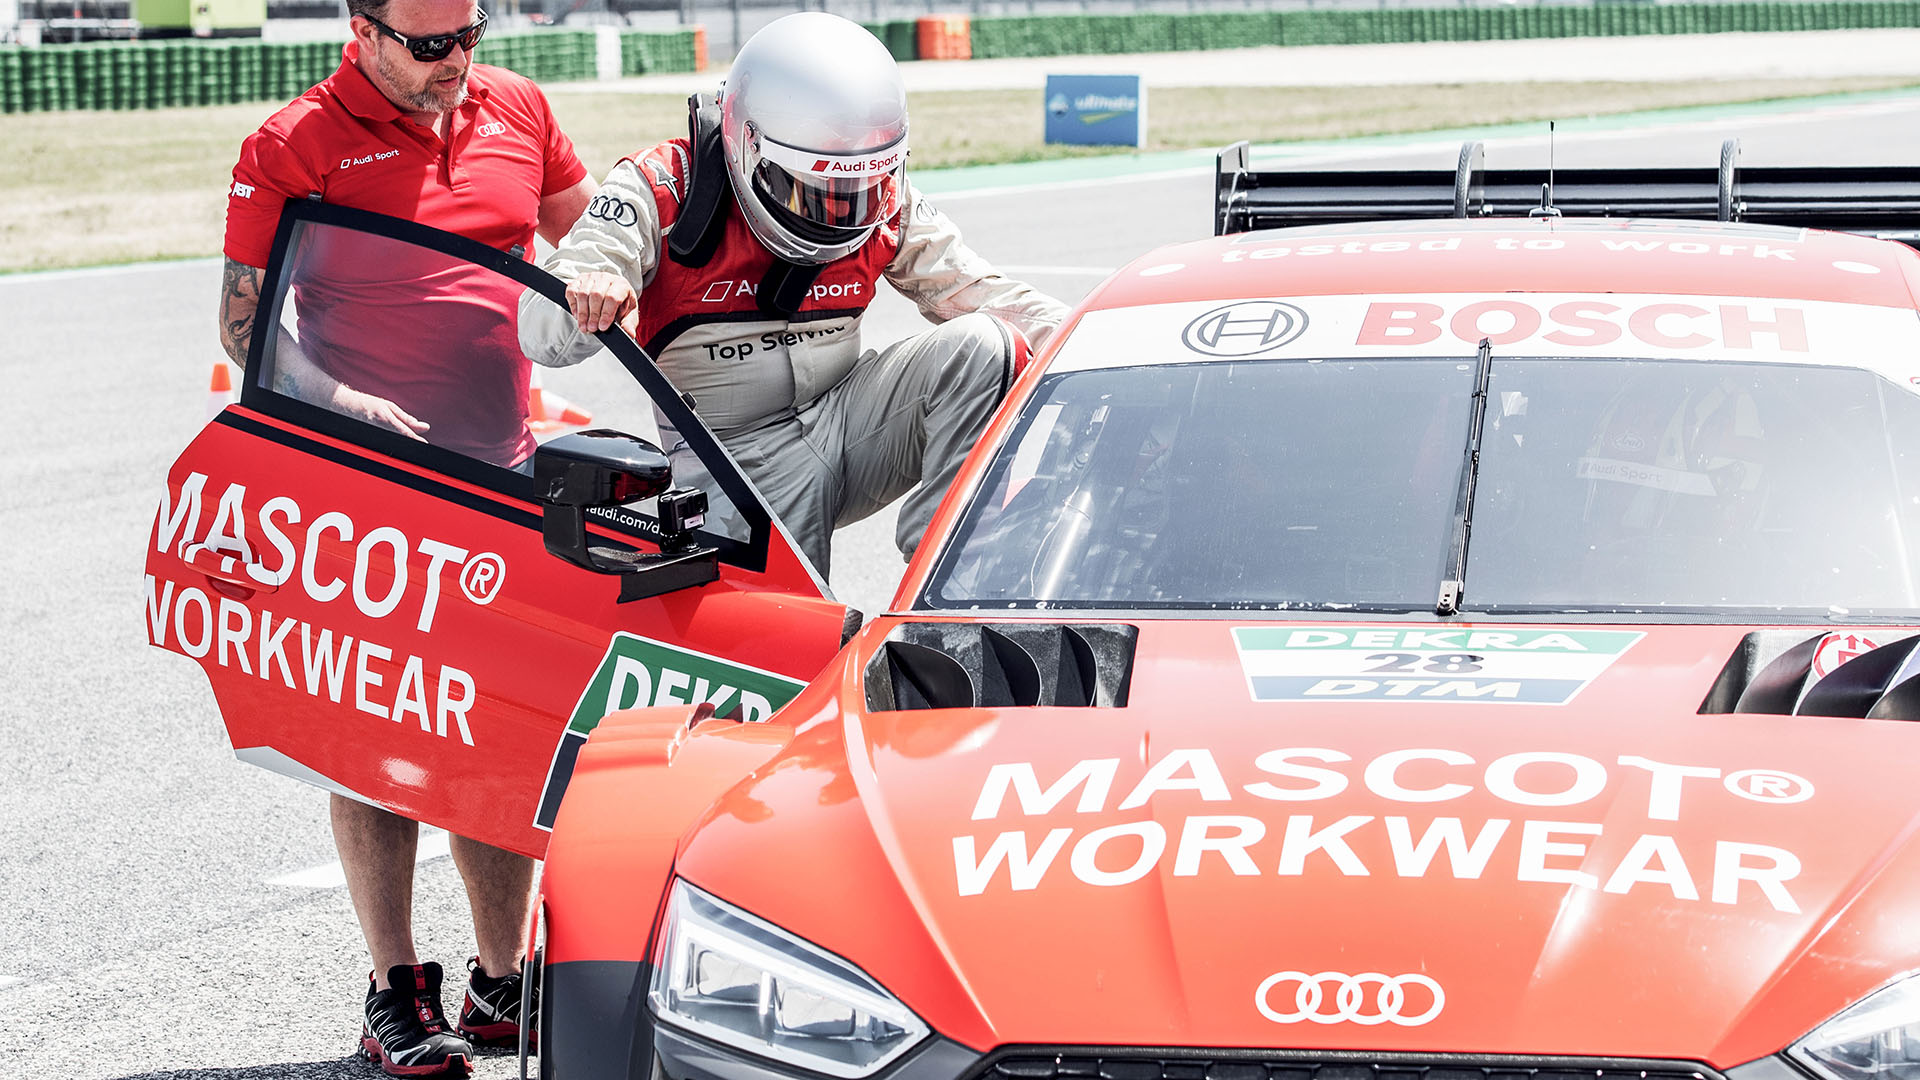 A passenger getting into the Audi RS 5 DTM race taxi